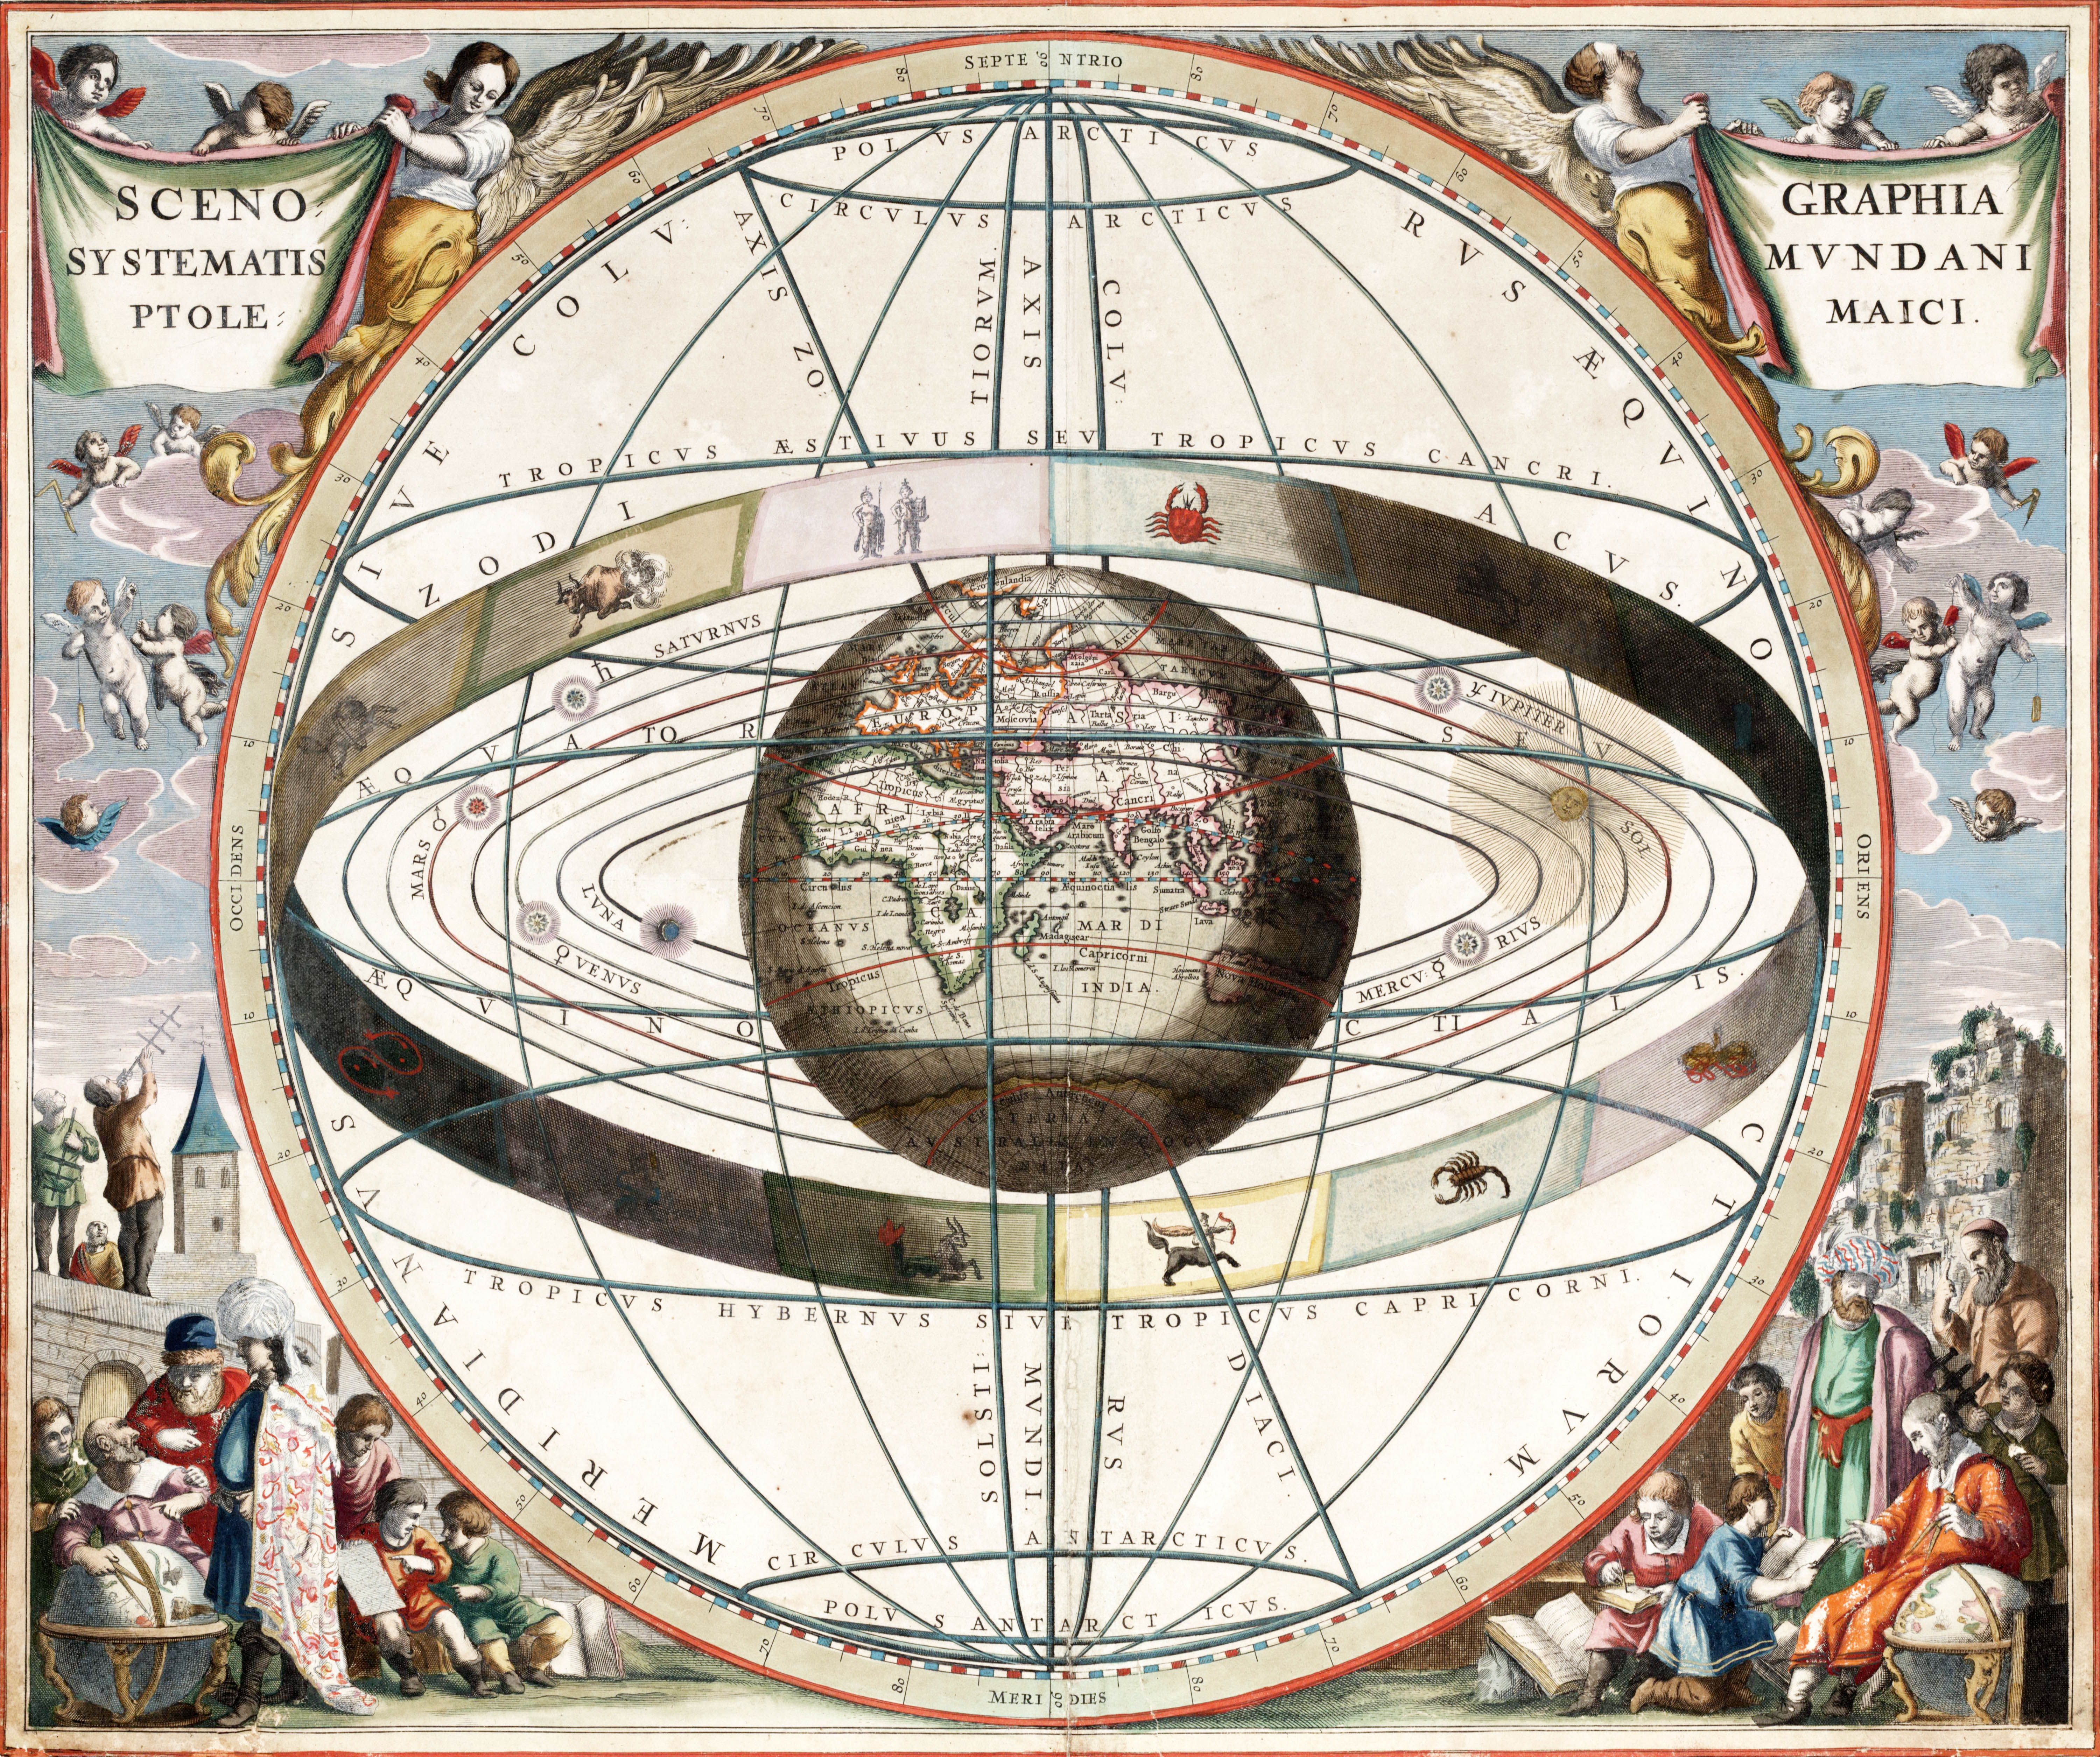 ptolemaic system astrology